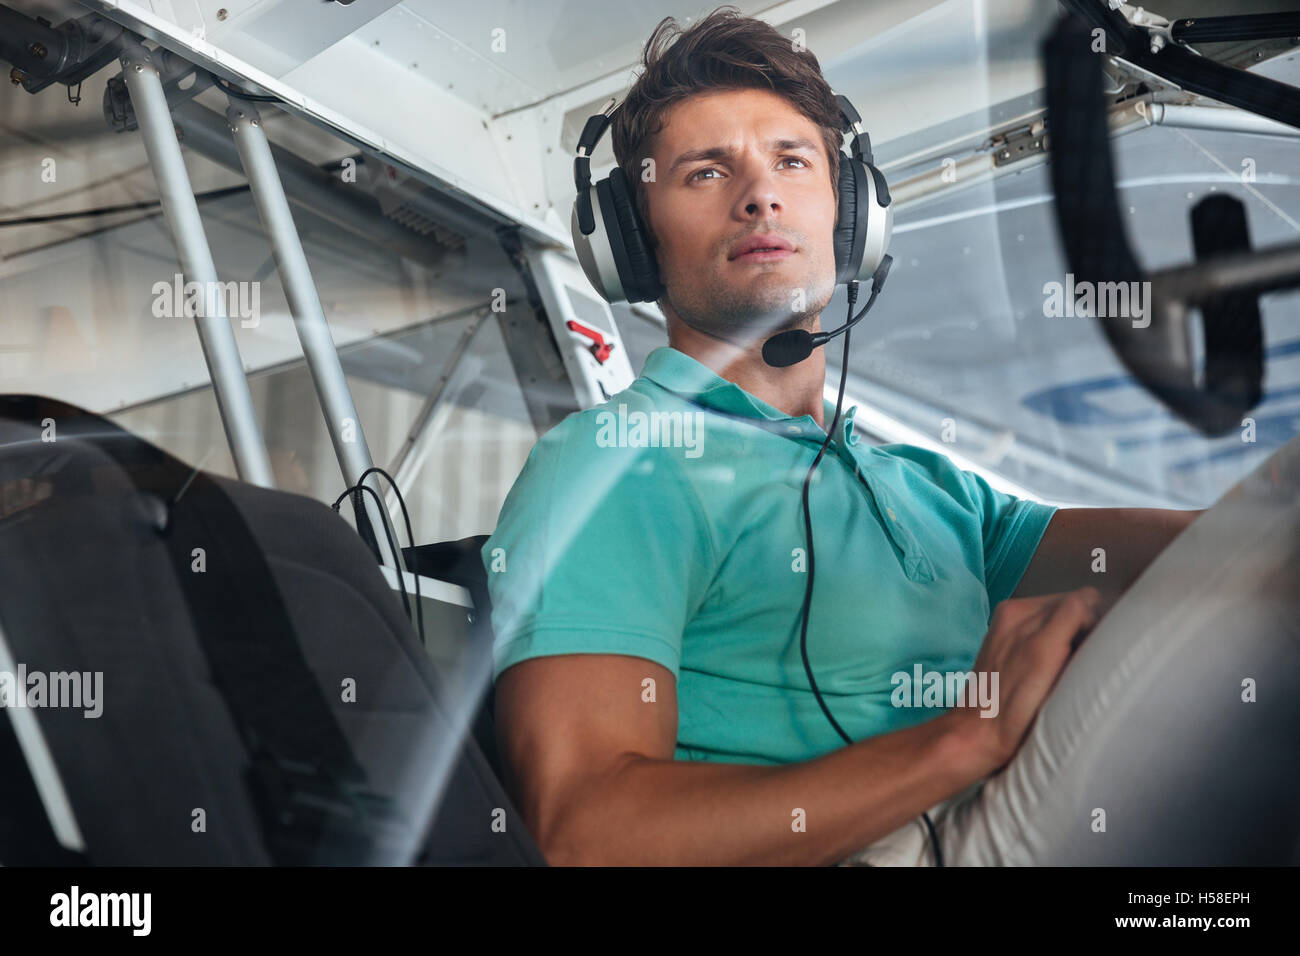 Portrait of serious young man pilot in cabin of private aircraft - Stock Image